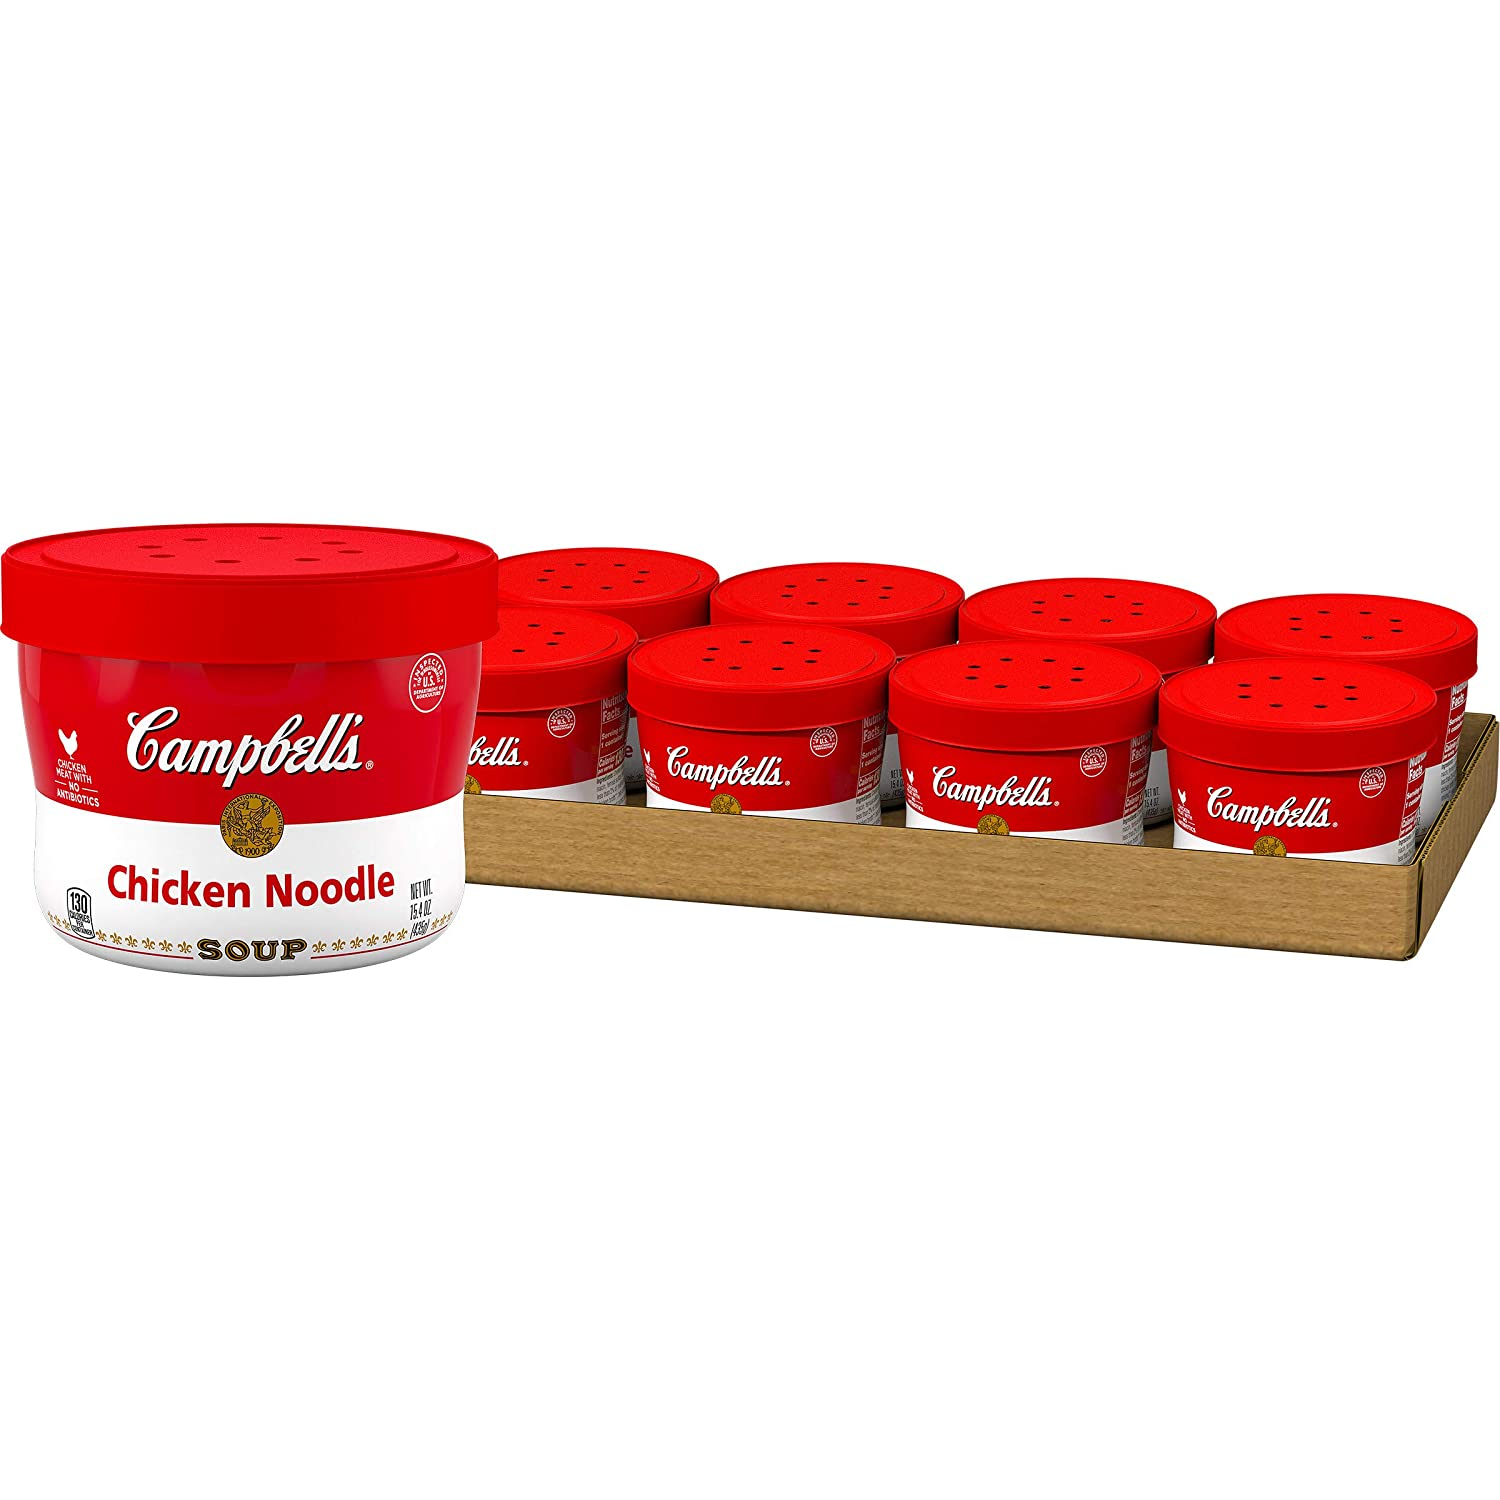 Campbell's Soup, Chicken Noodle, 15.4 Ounce (Pack of 8)